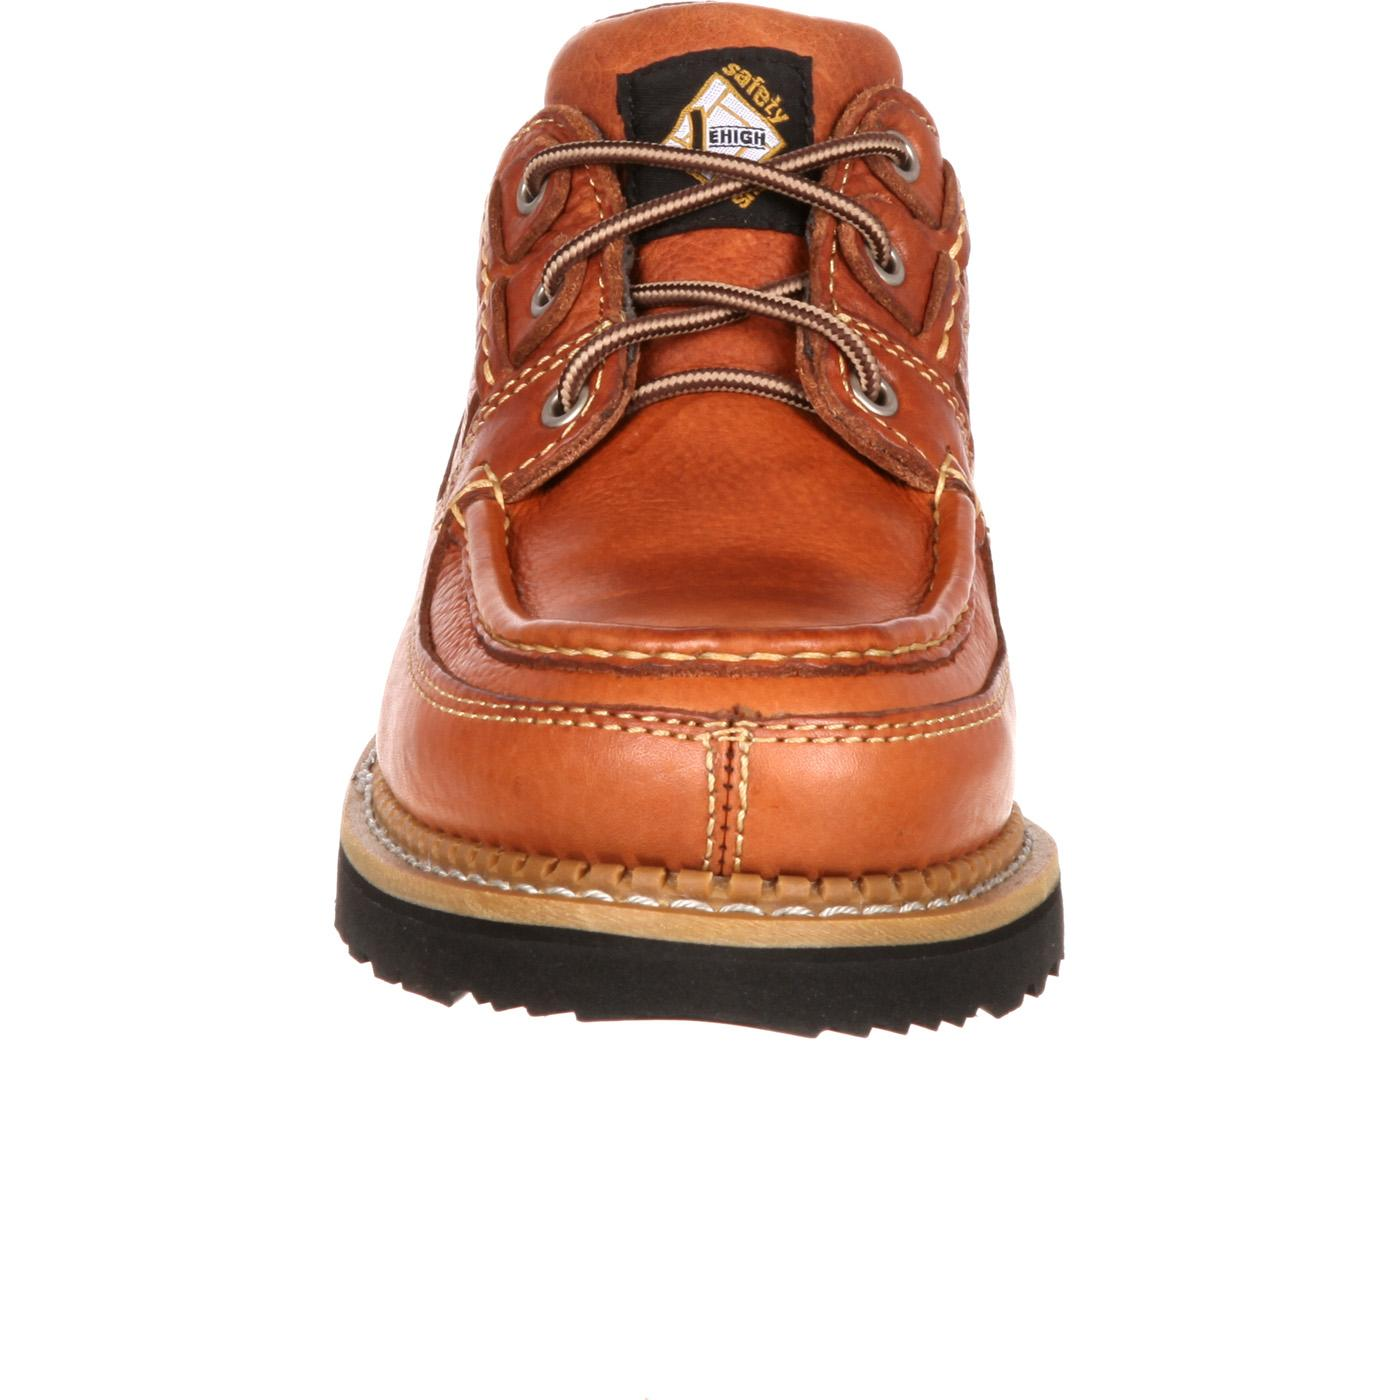 Lehigh Steel Toe Boat Shoes